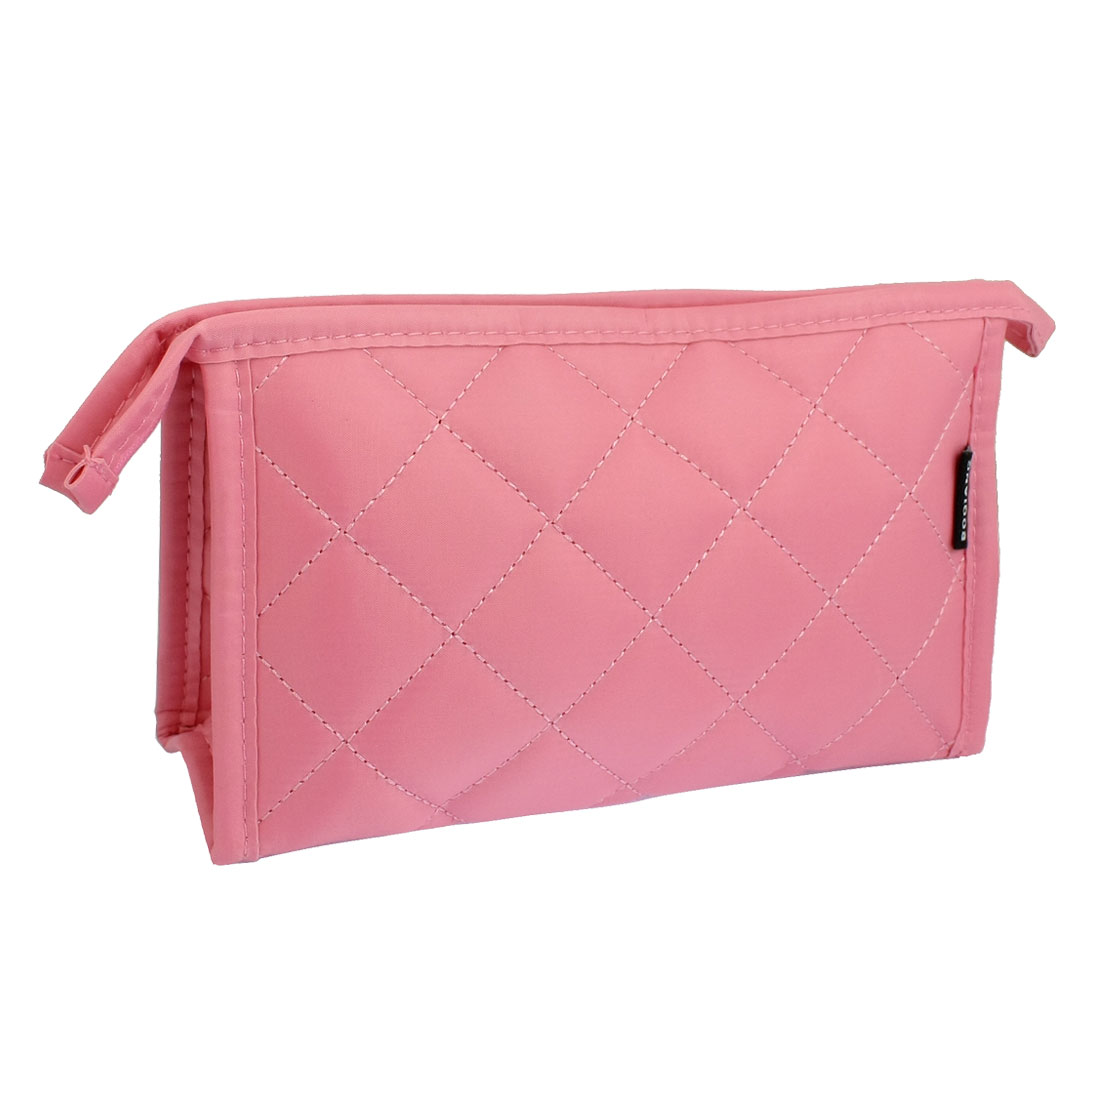 Check Pattern Zip Up Make Up Pink Cosmetic Pouch Bag w Mirror for Women